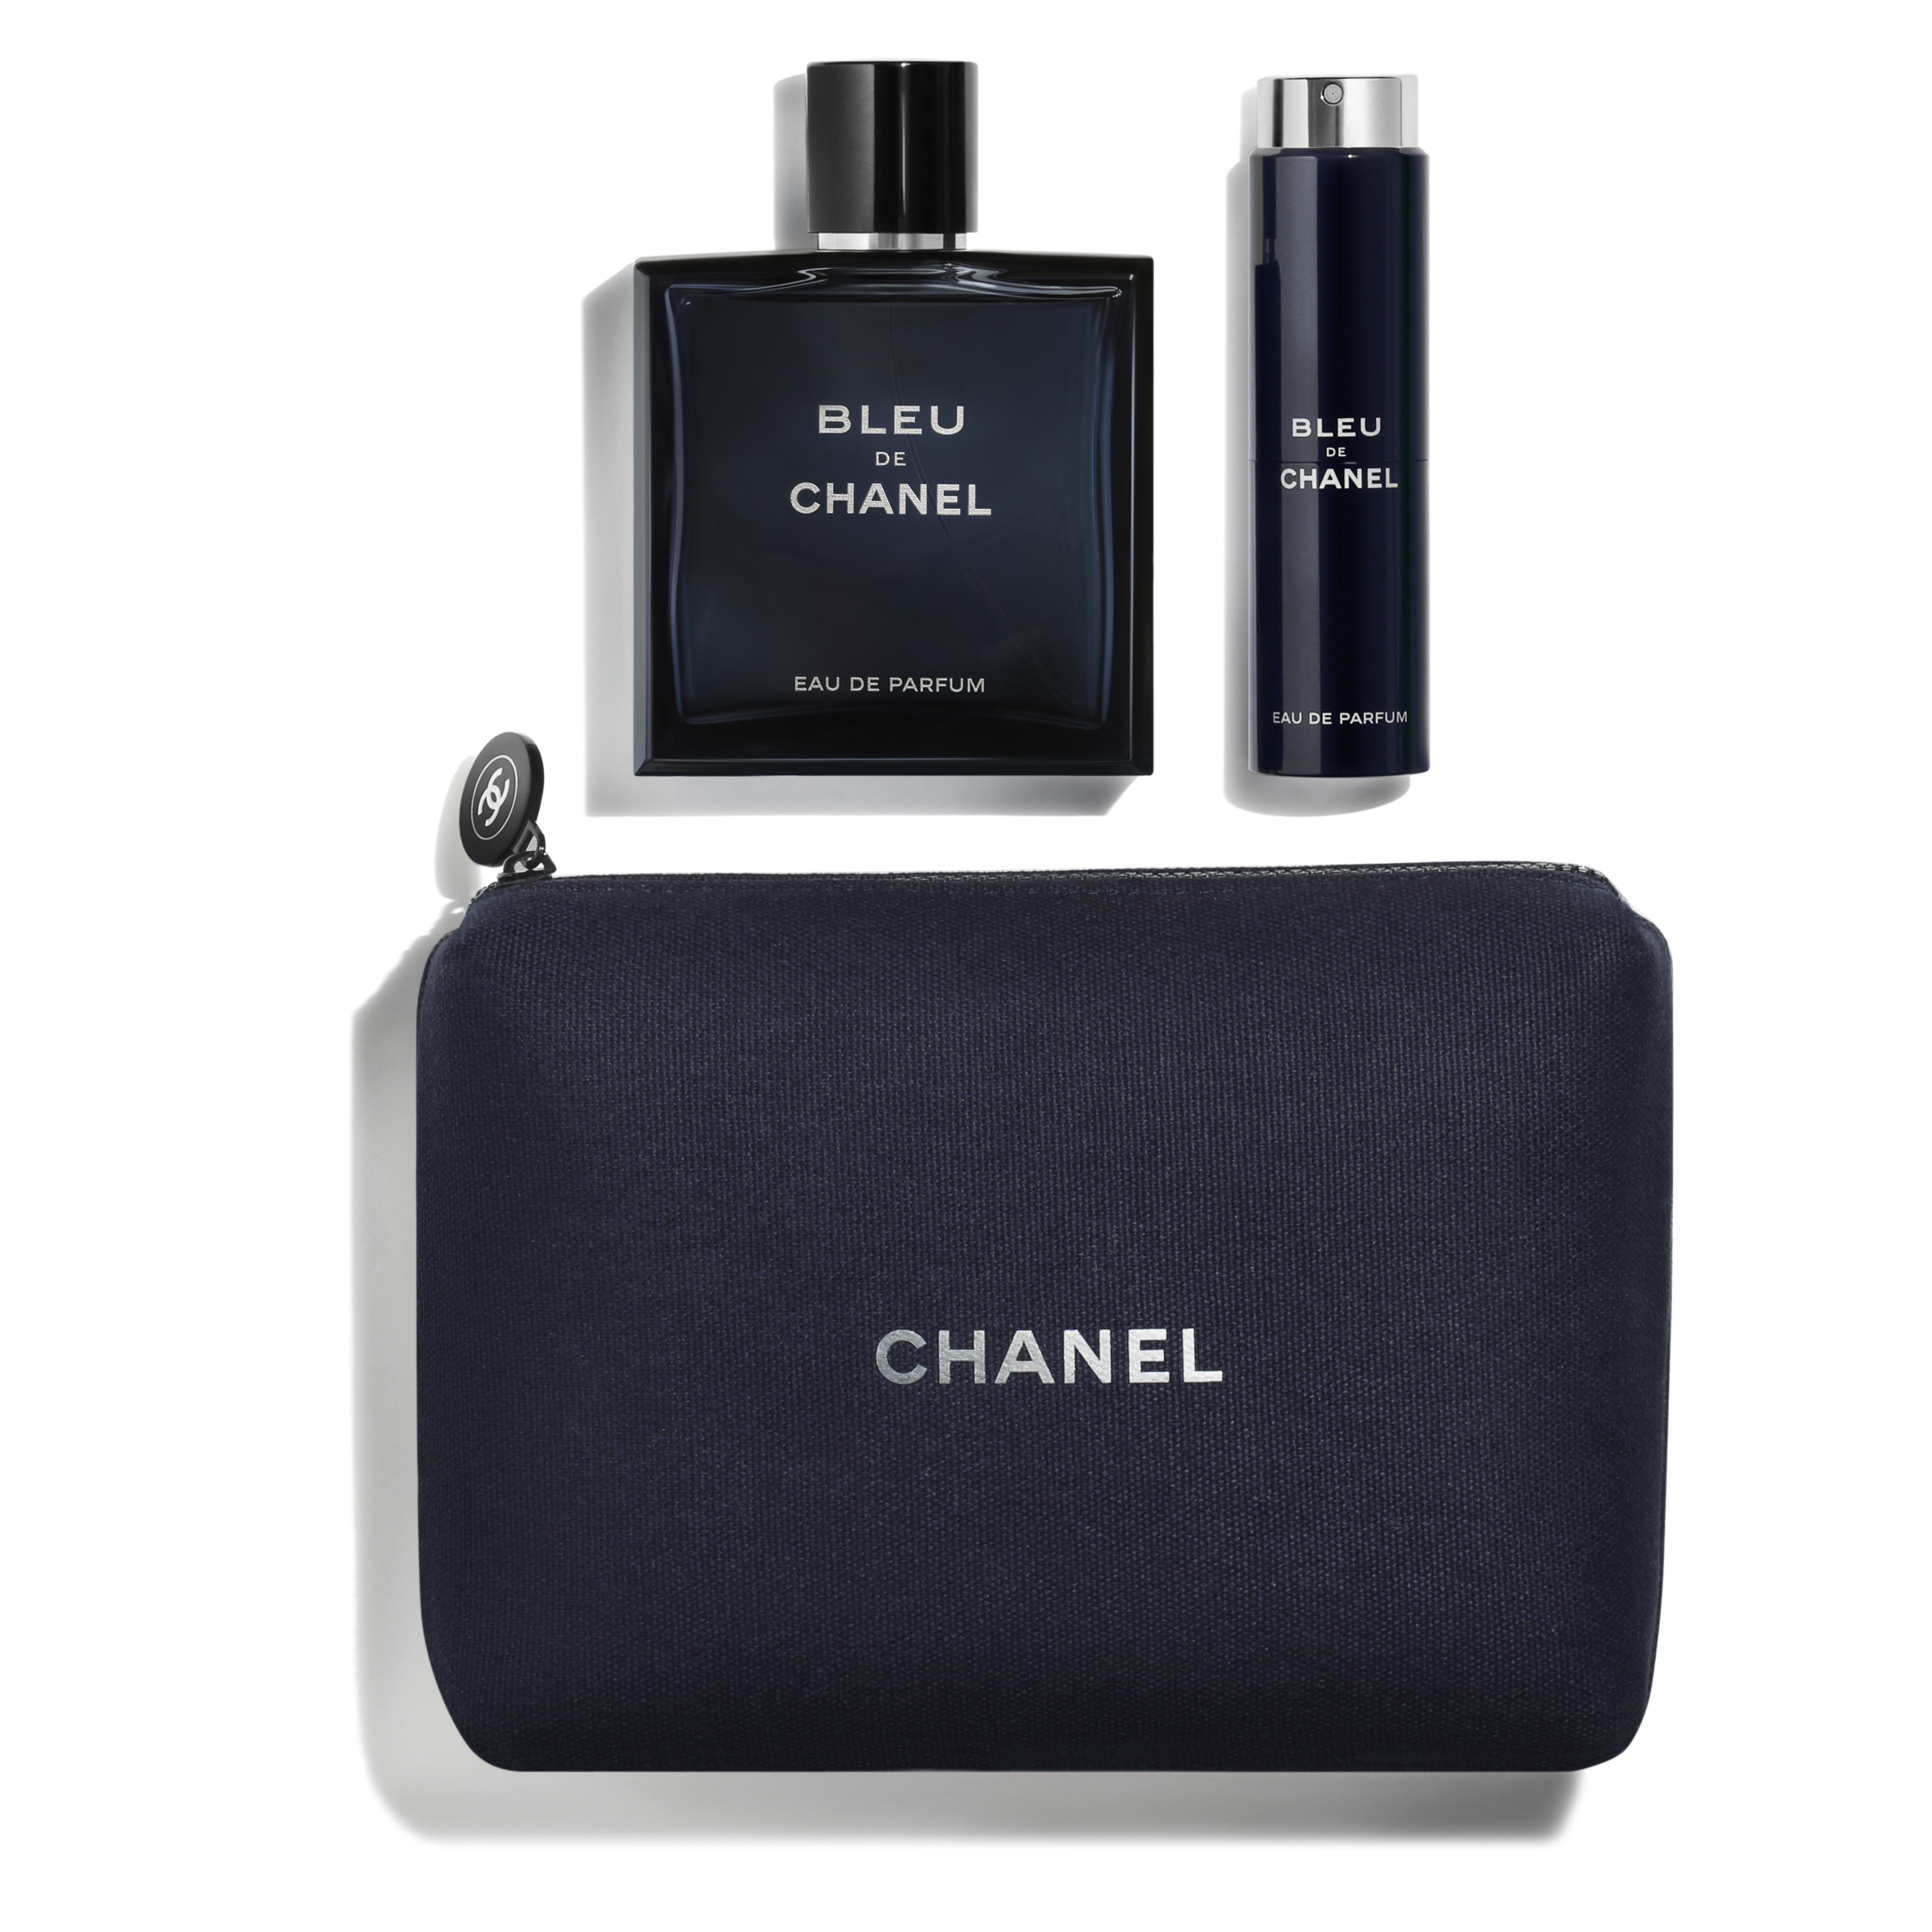 9818f0cd035f BLEU DE CHANEL Eau de Parfum Travel Set Ref. 107308